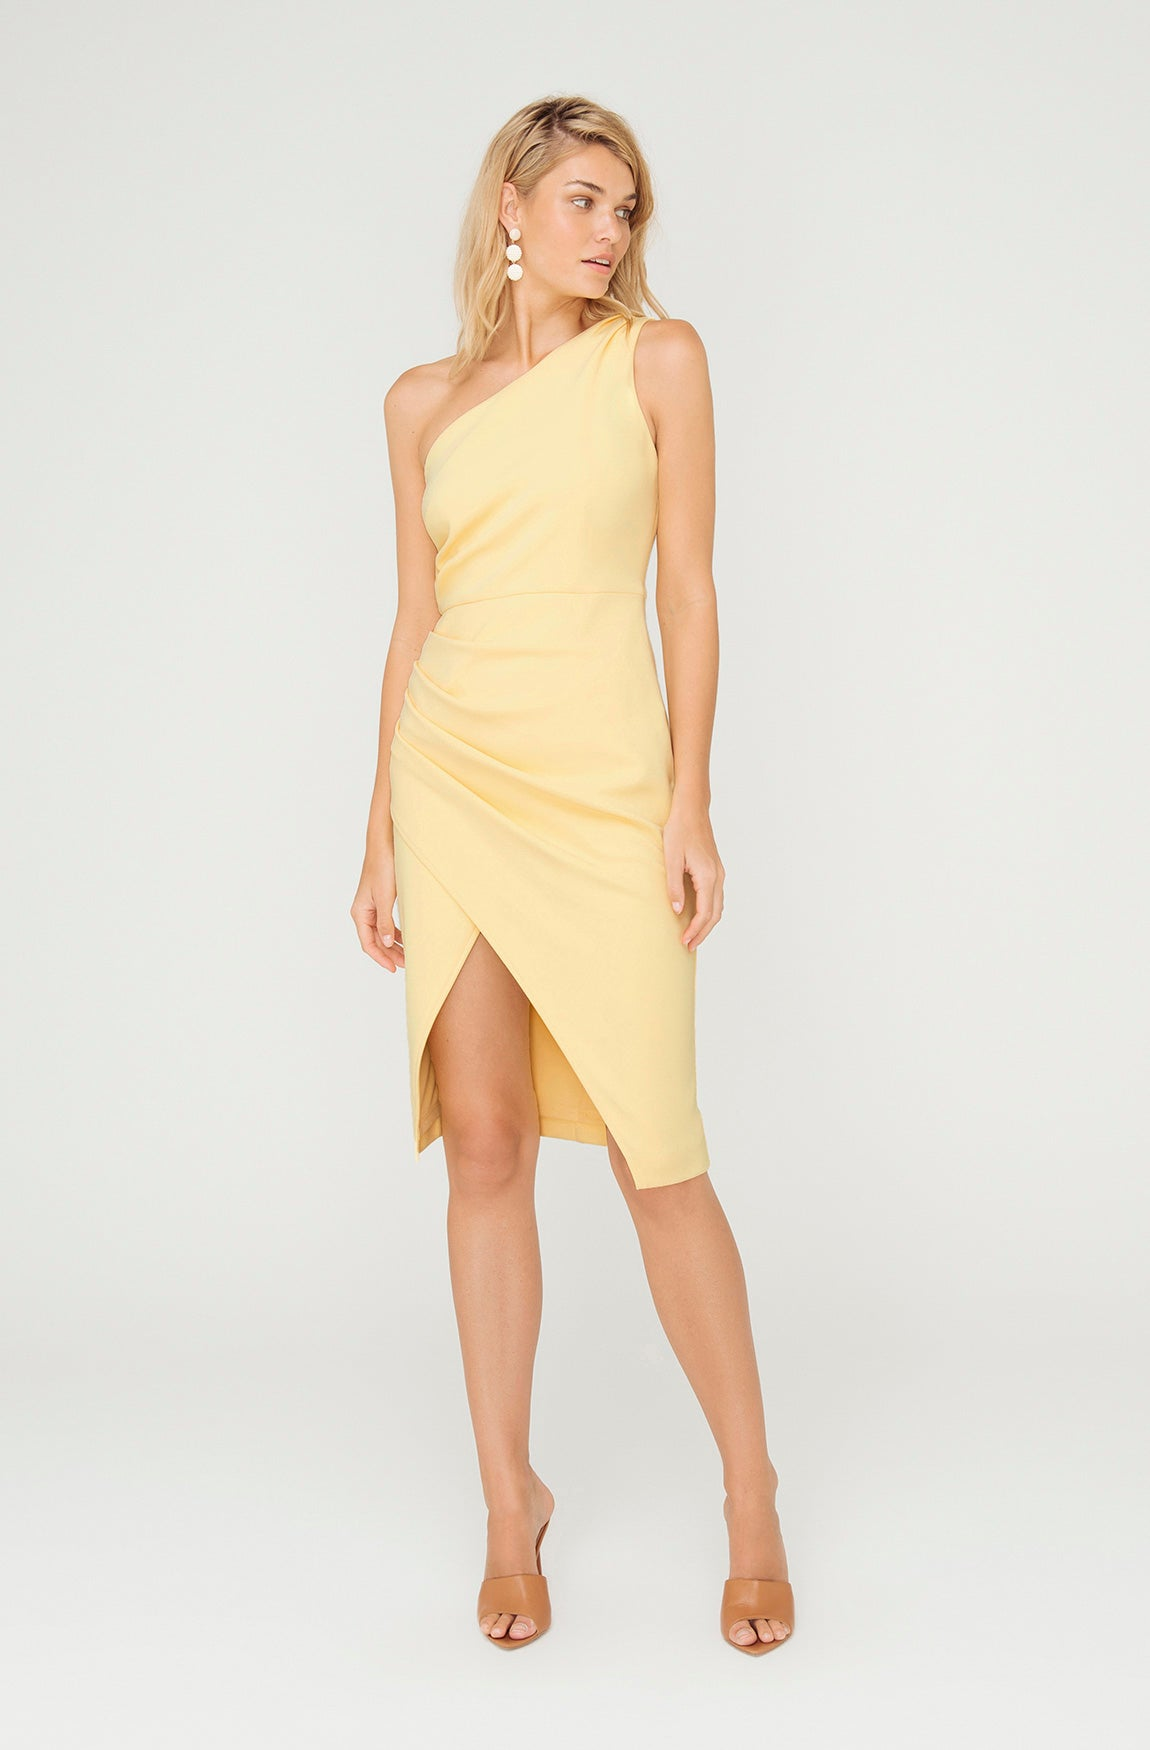 BOARDWALK ONE SHOULDER YELLOW DRESS